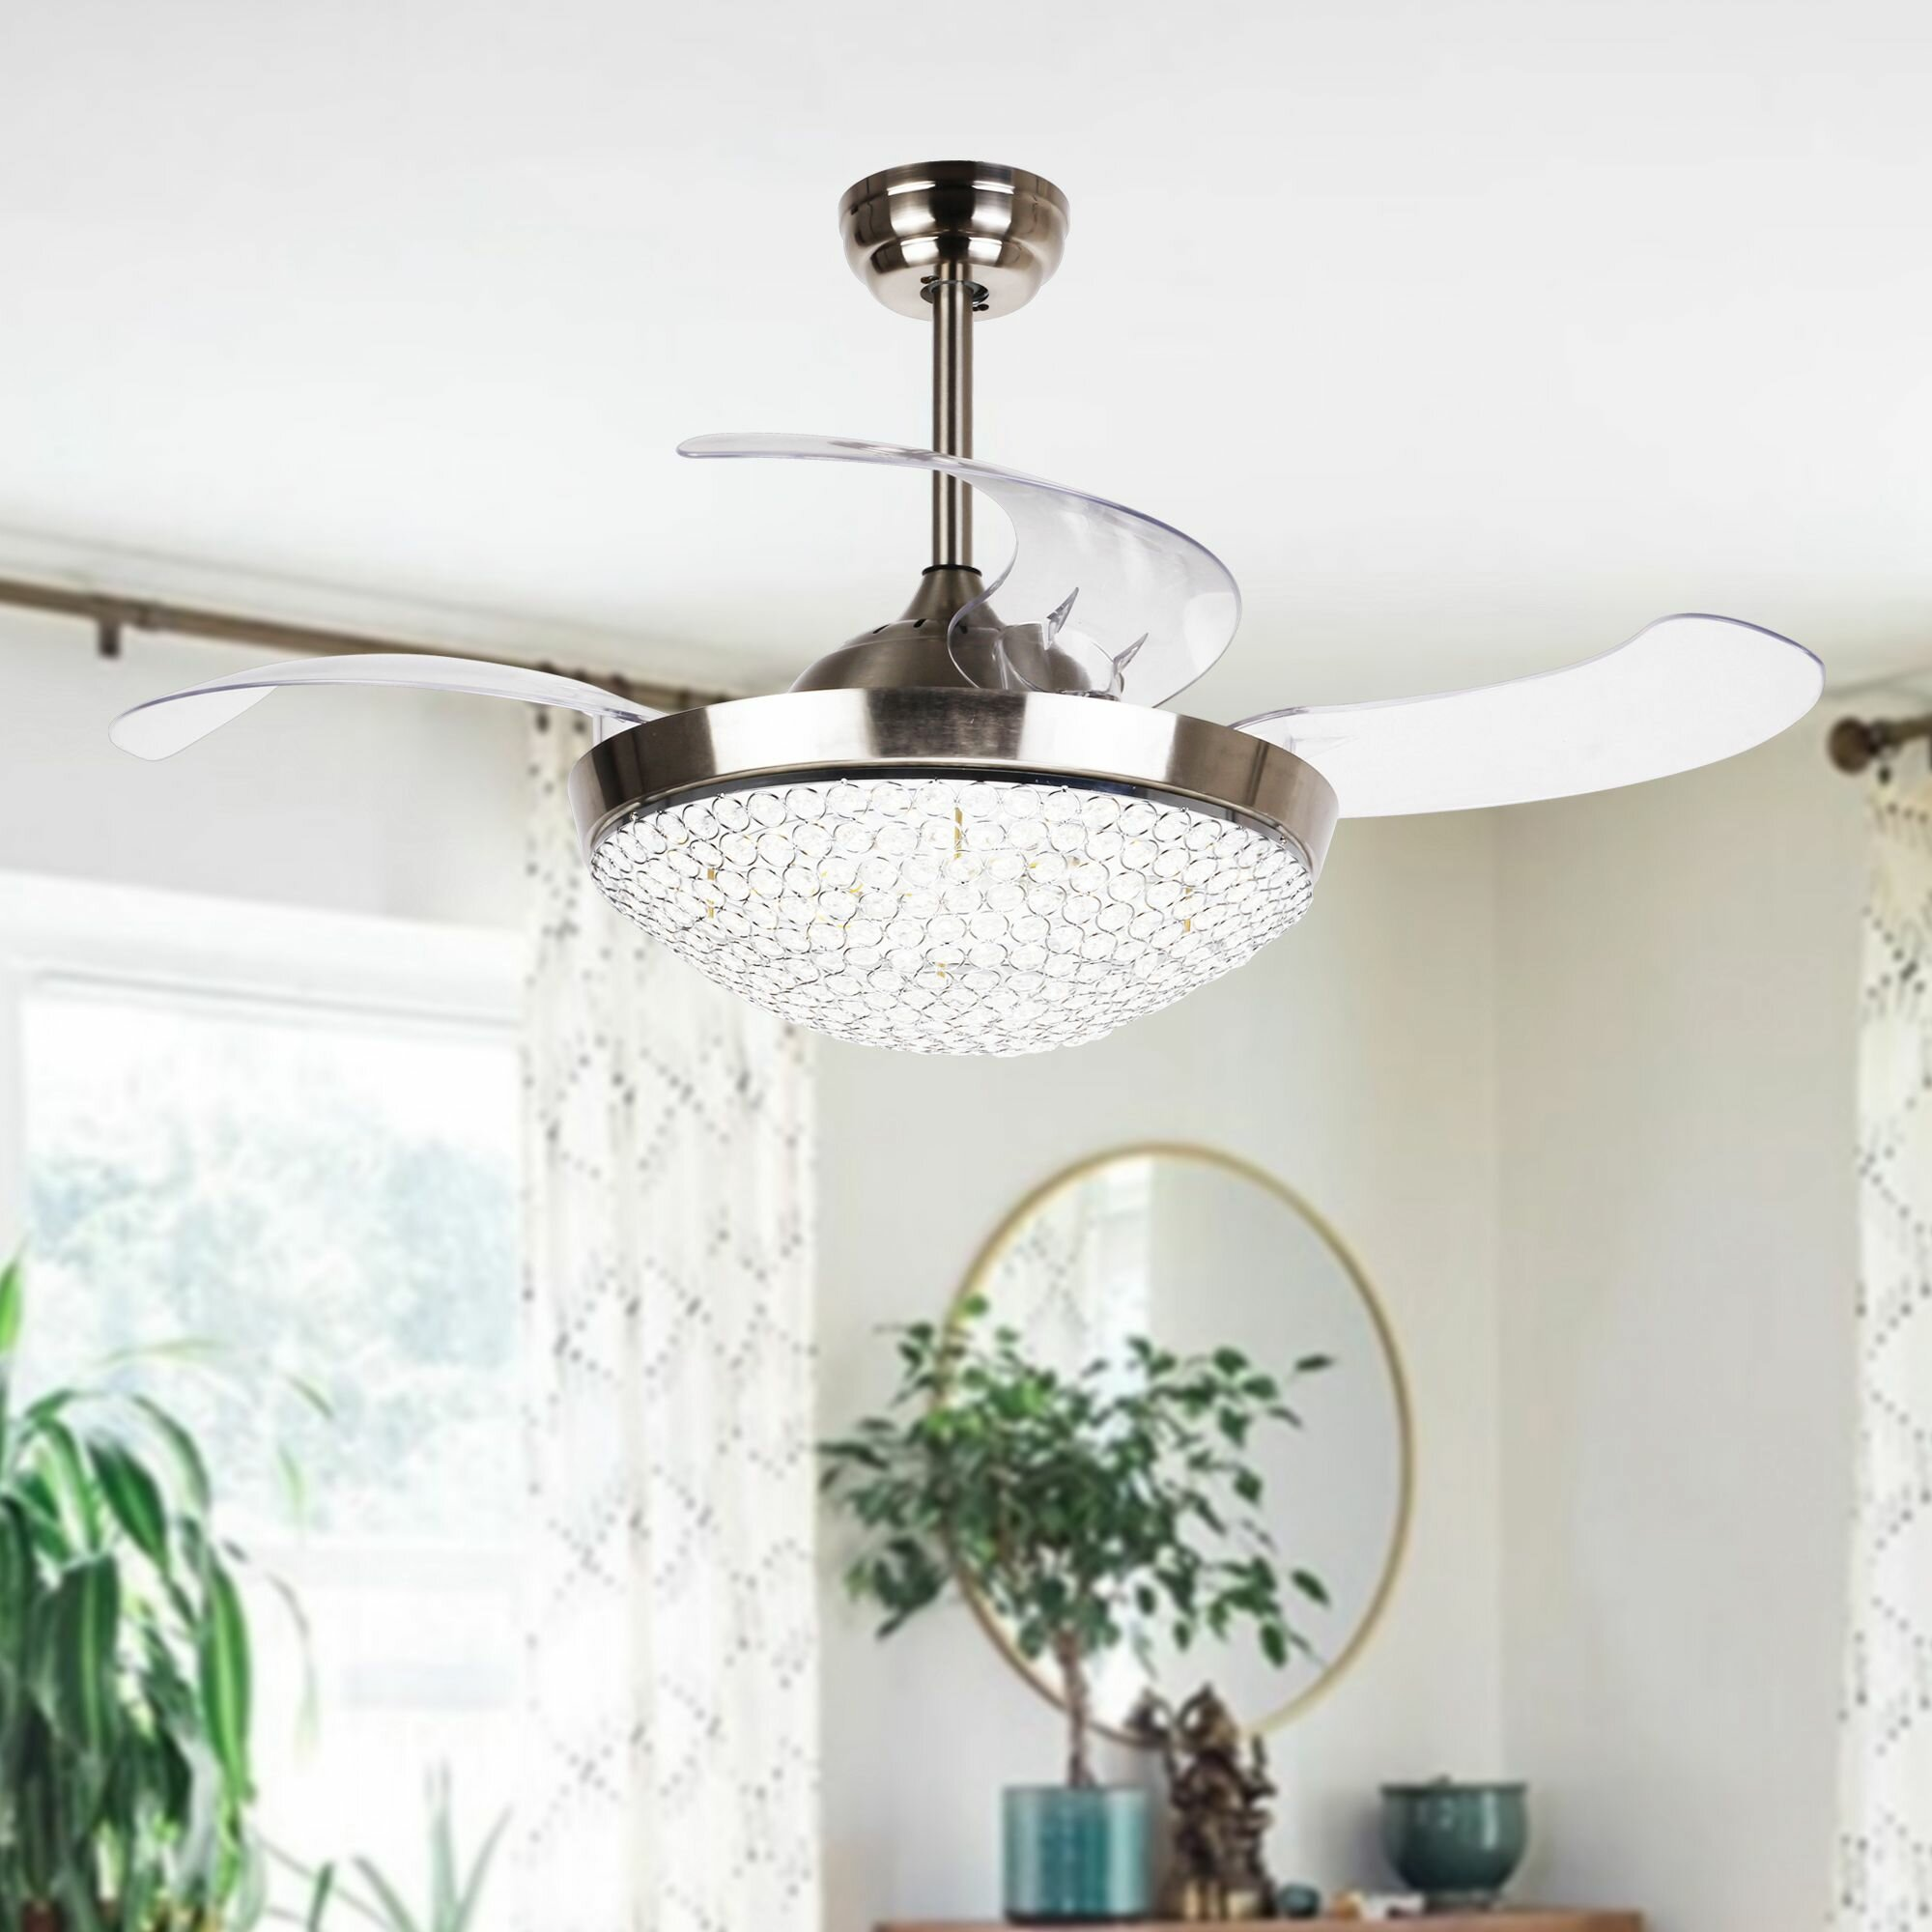 Ceiling Fans Youll Love Wayfair Hunter Customer Service 425 Brownesville 4 Blade Led Fan With Remote